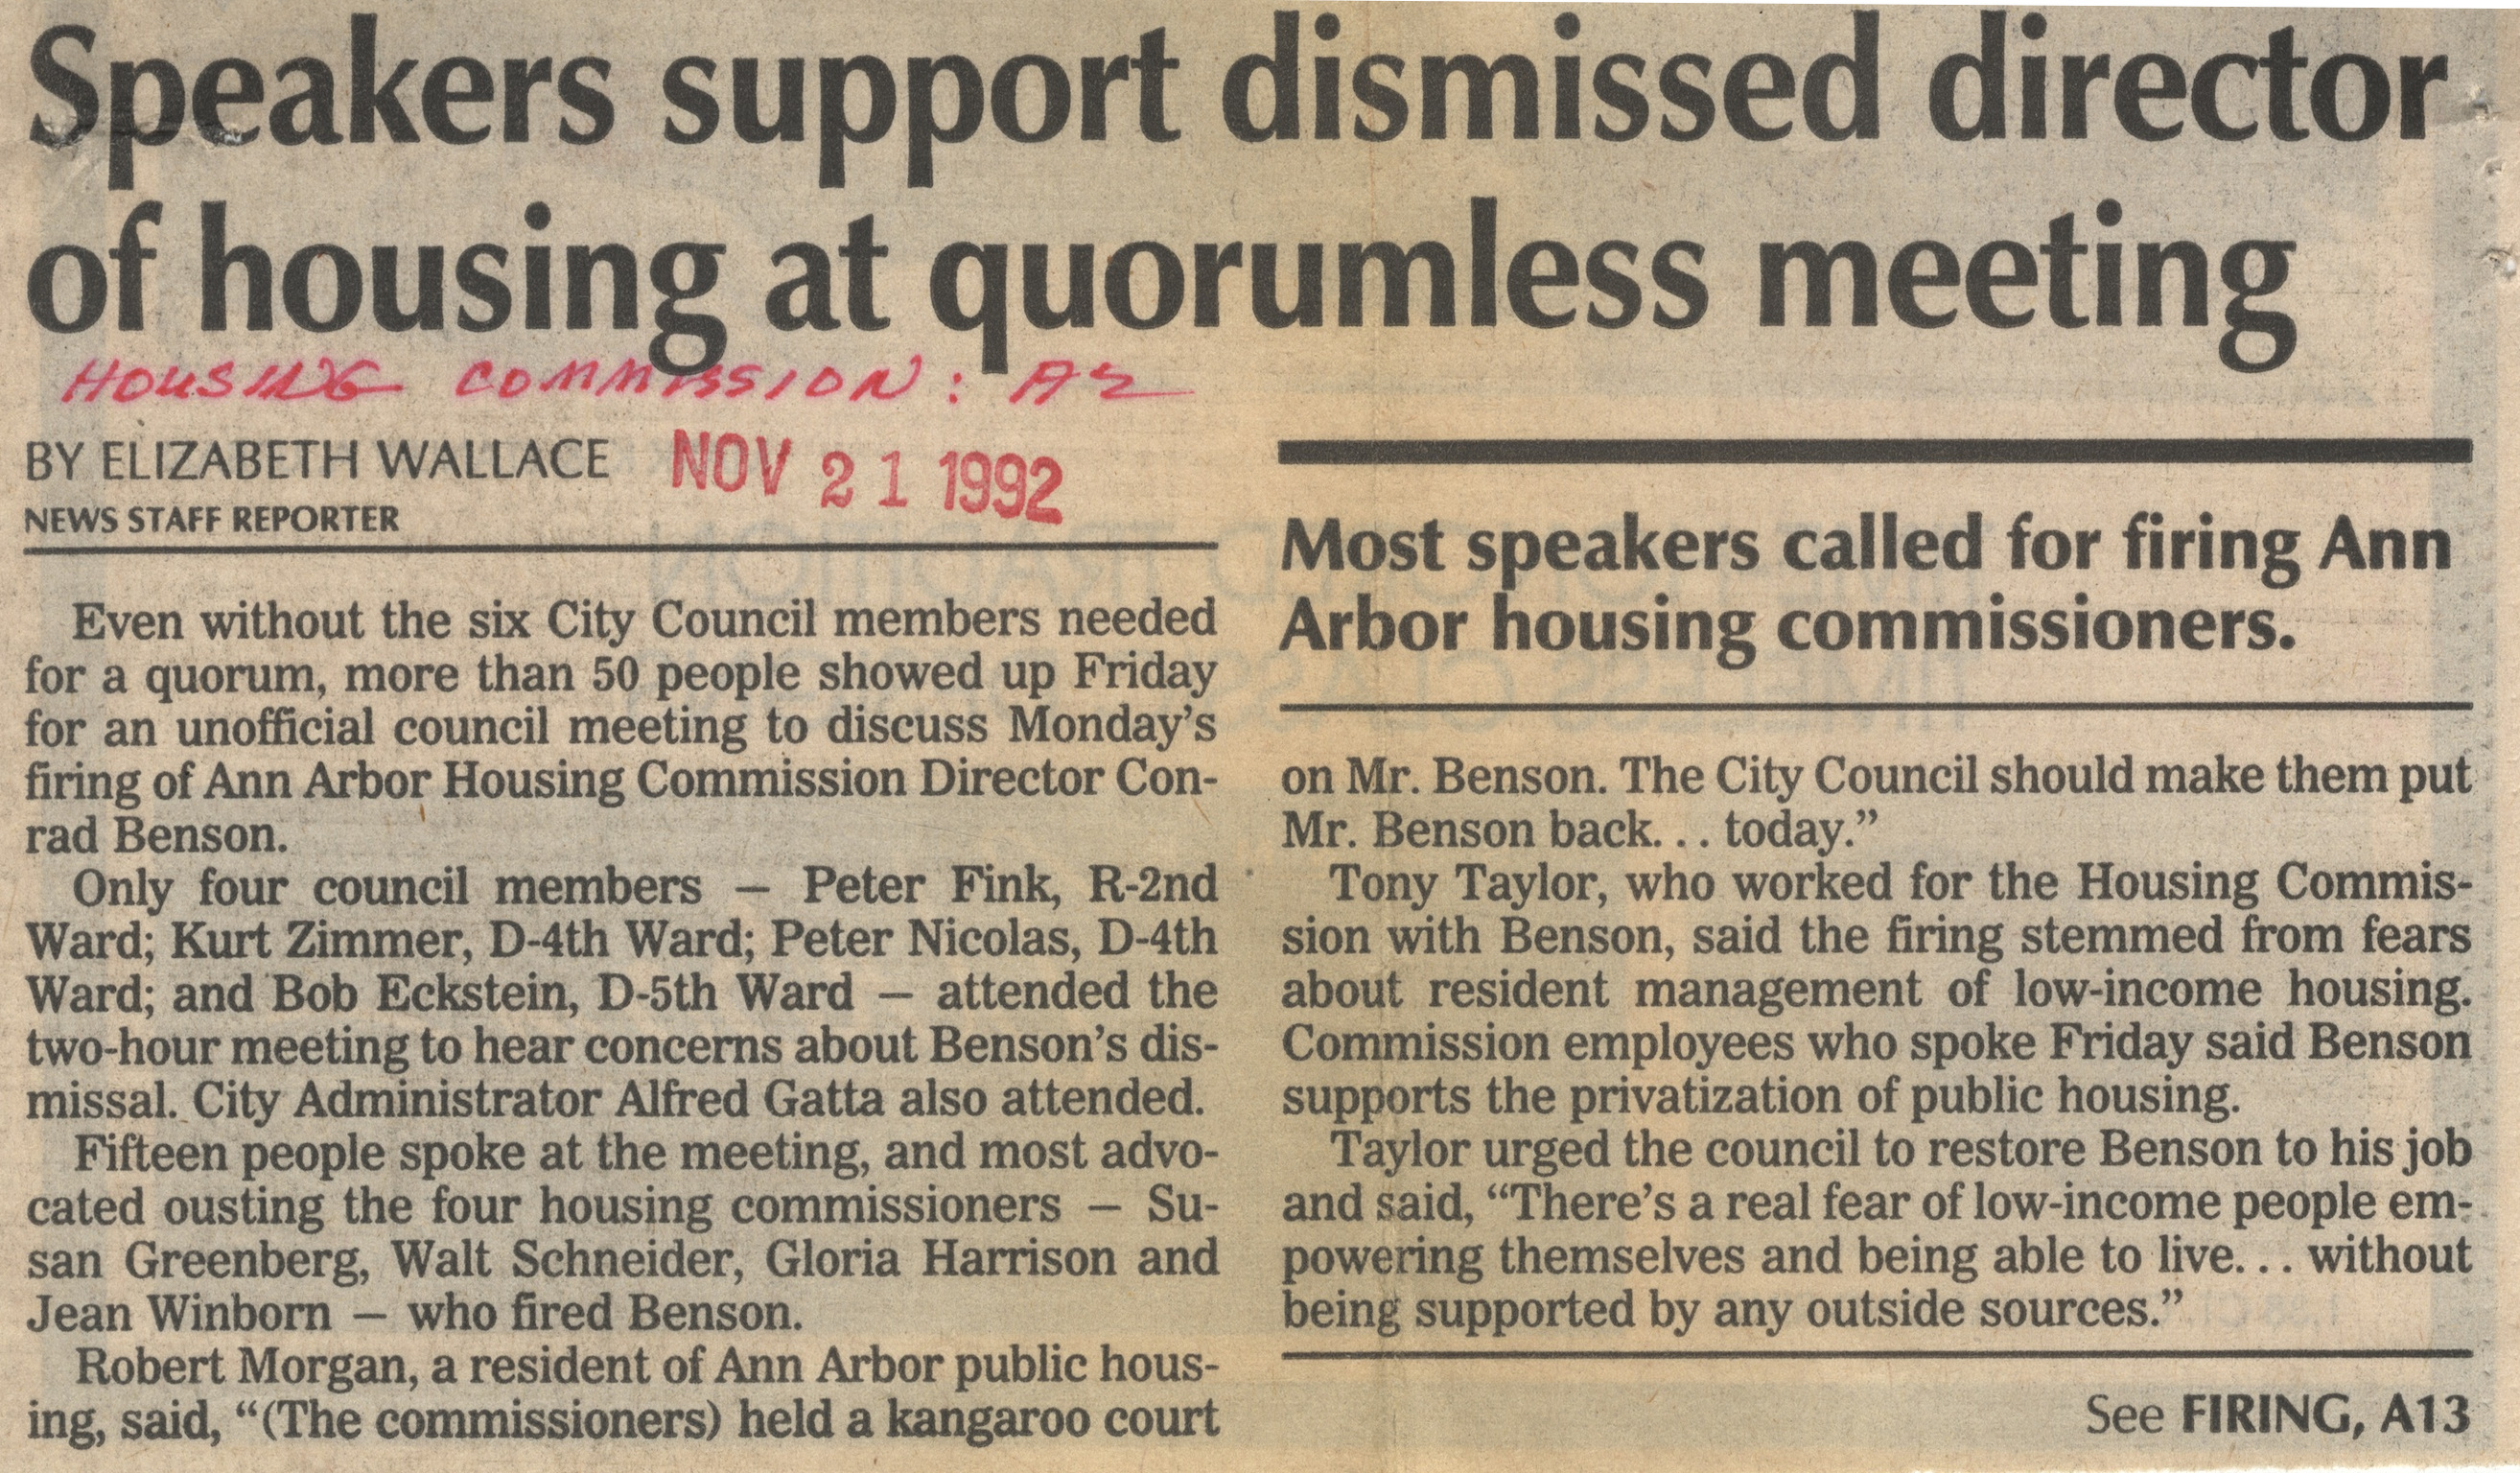 Speakers Support Dismissed Director of Housing at Quorumless Meeting image